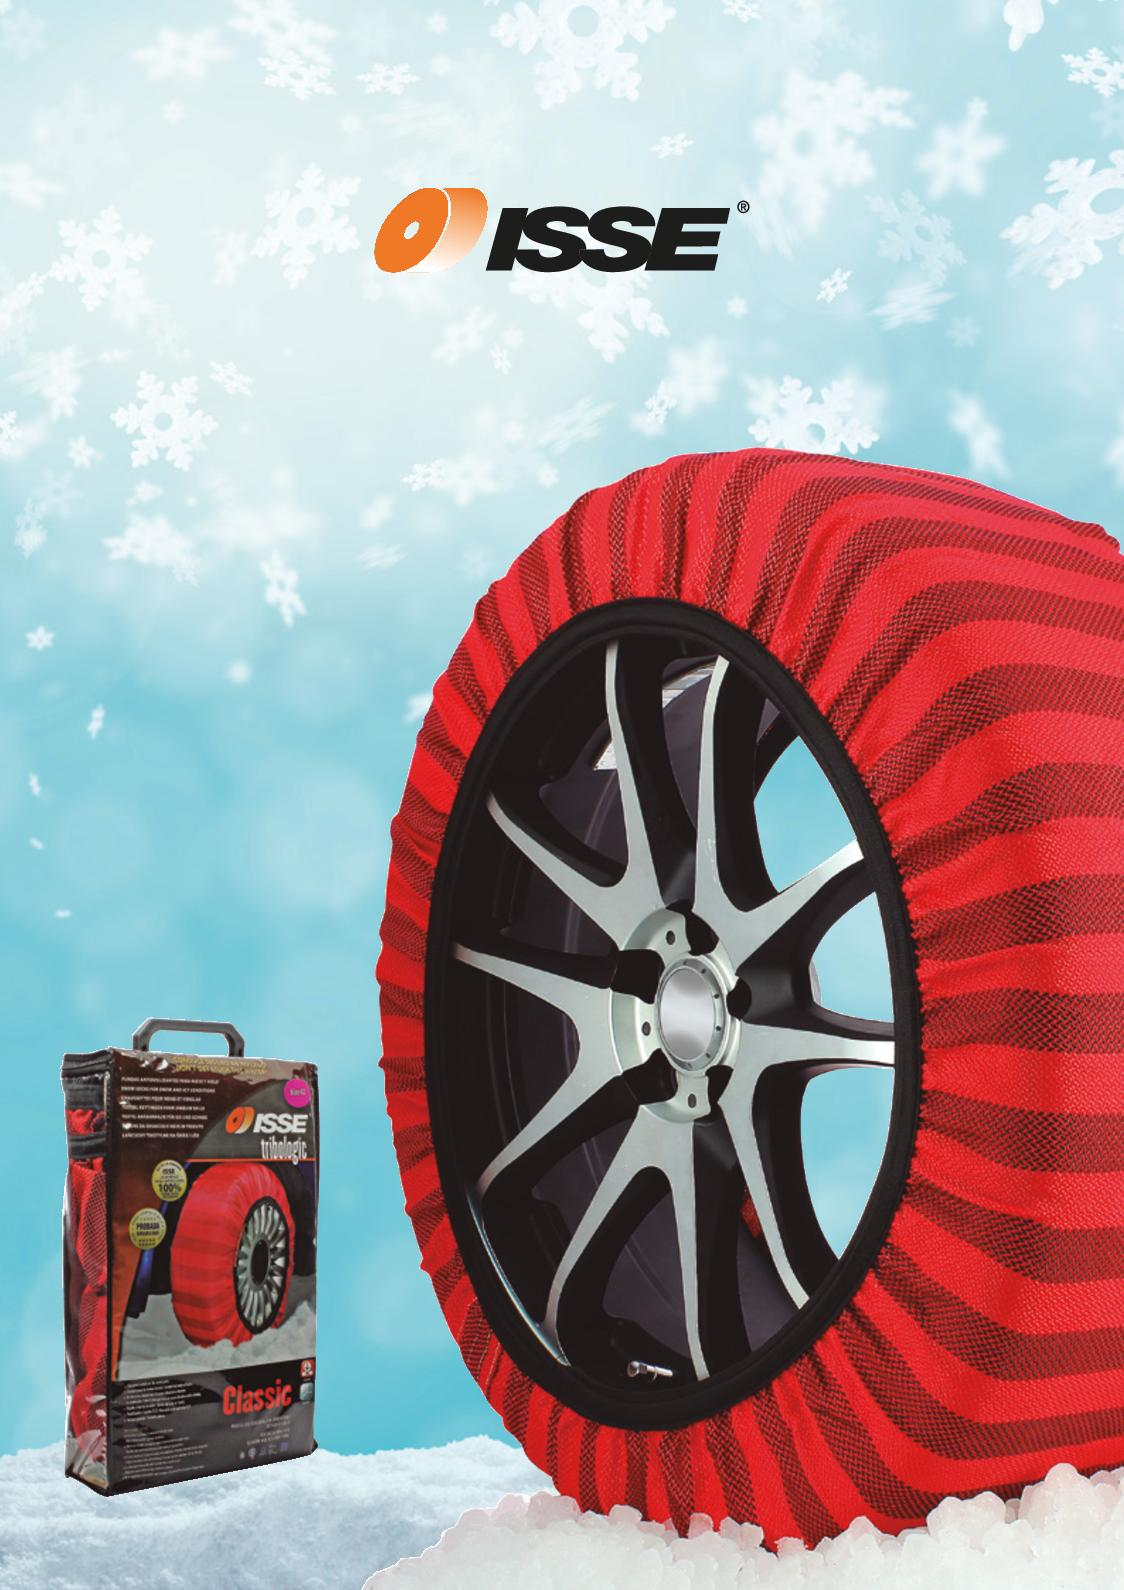 ISSE C60058 Classic Issue Snow Socks for Traction Size 58